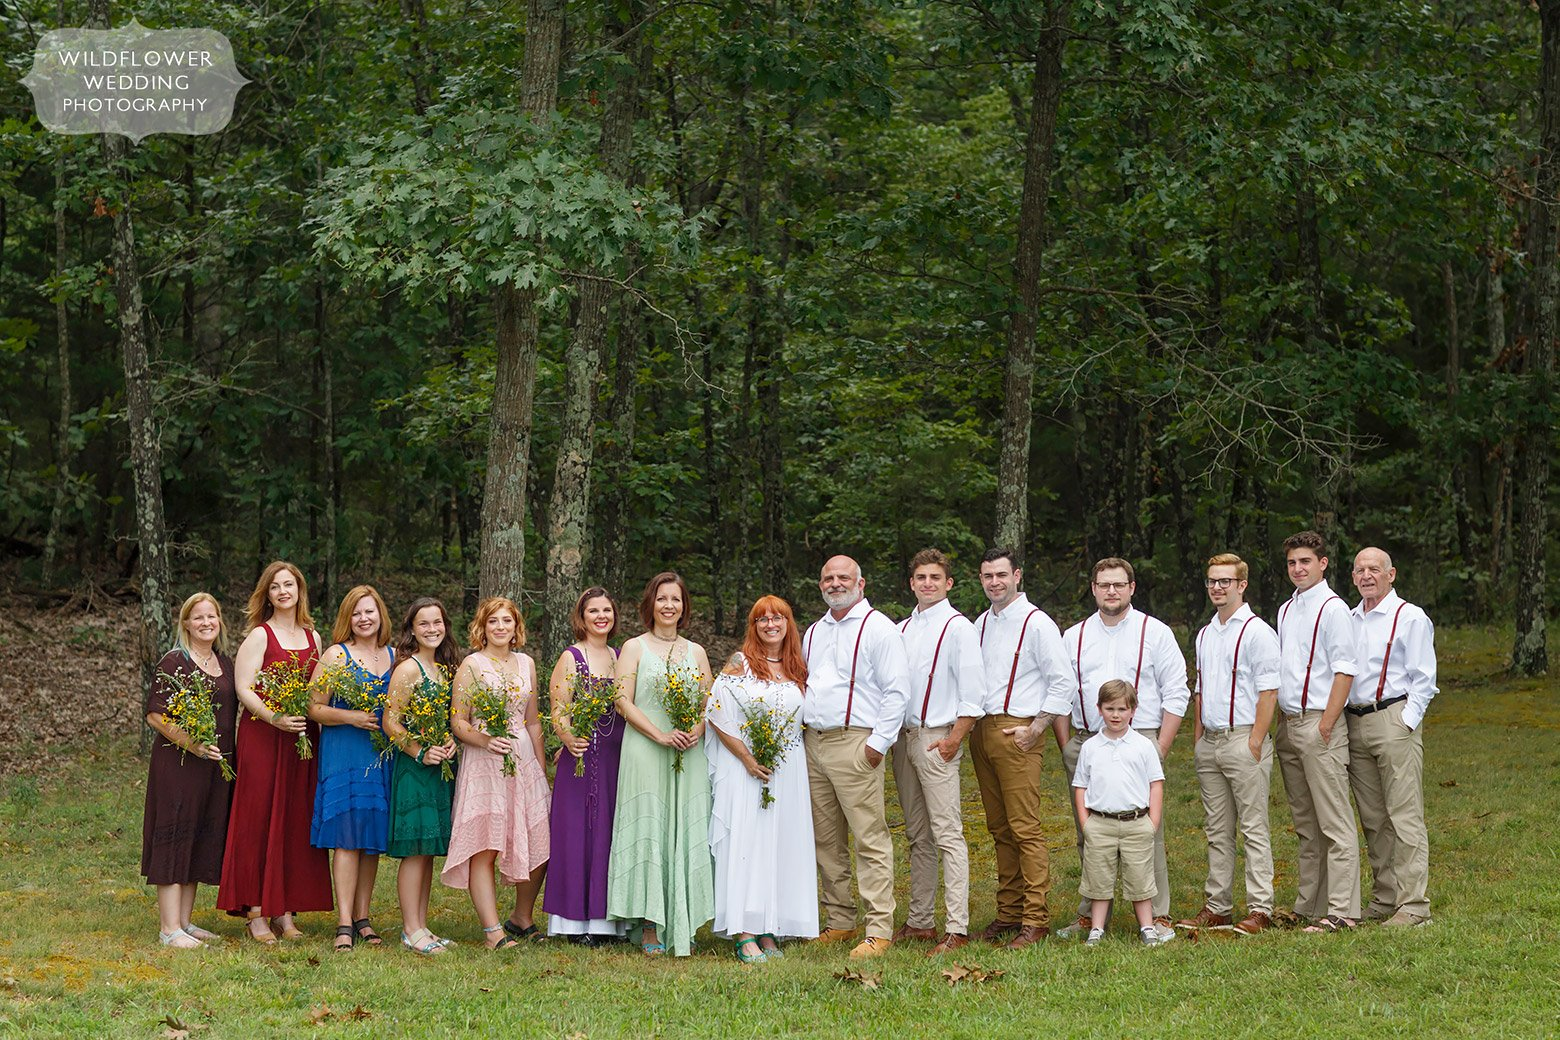 Ecclectic and colorful wedding party for this backyard wedding in southern Missouri.